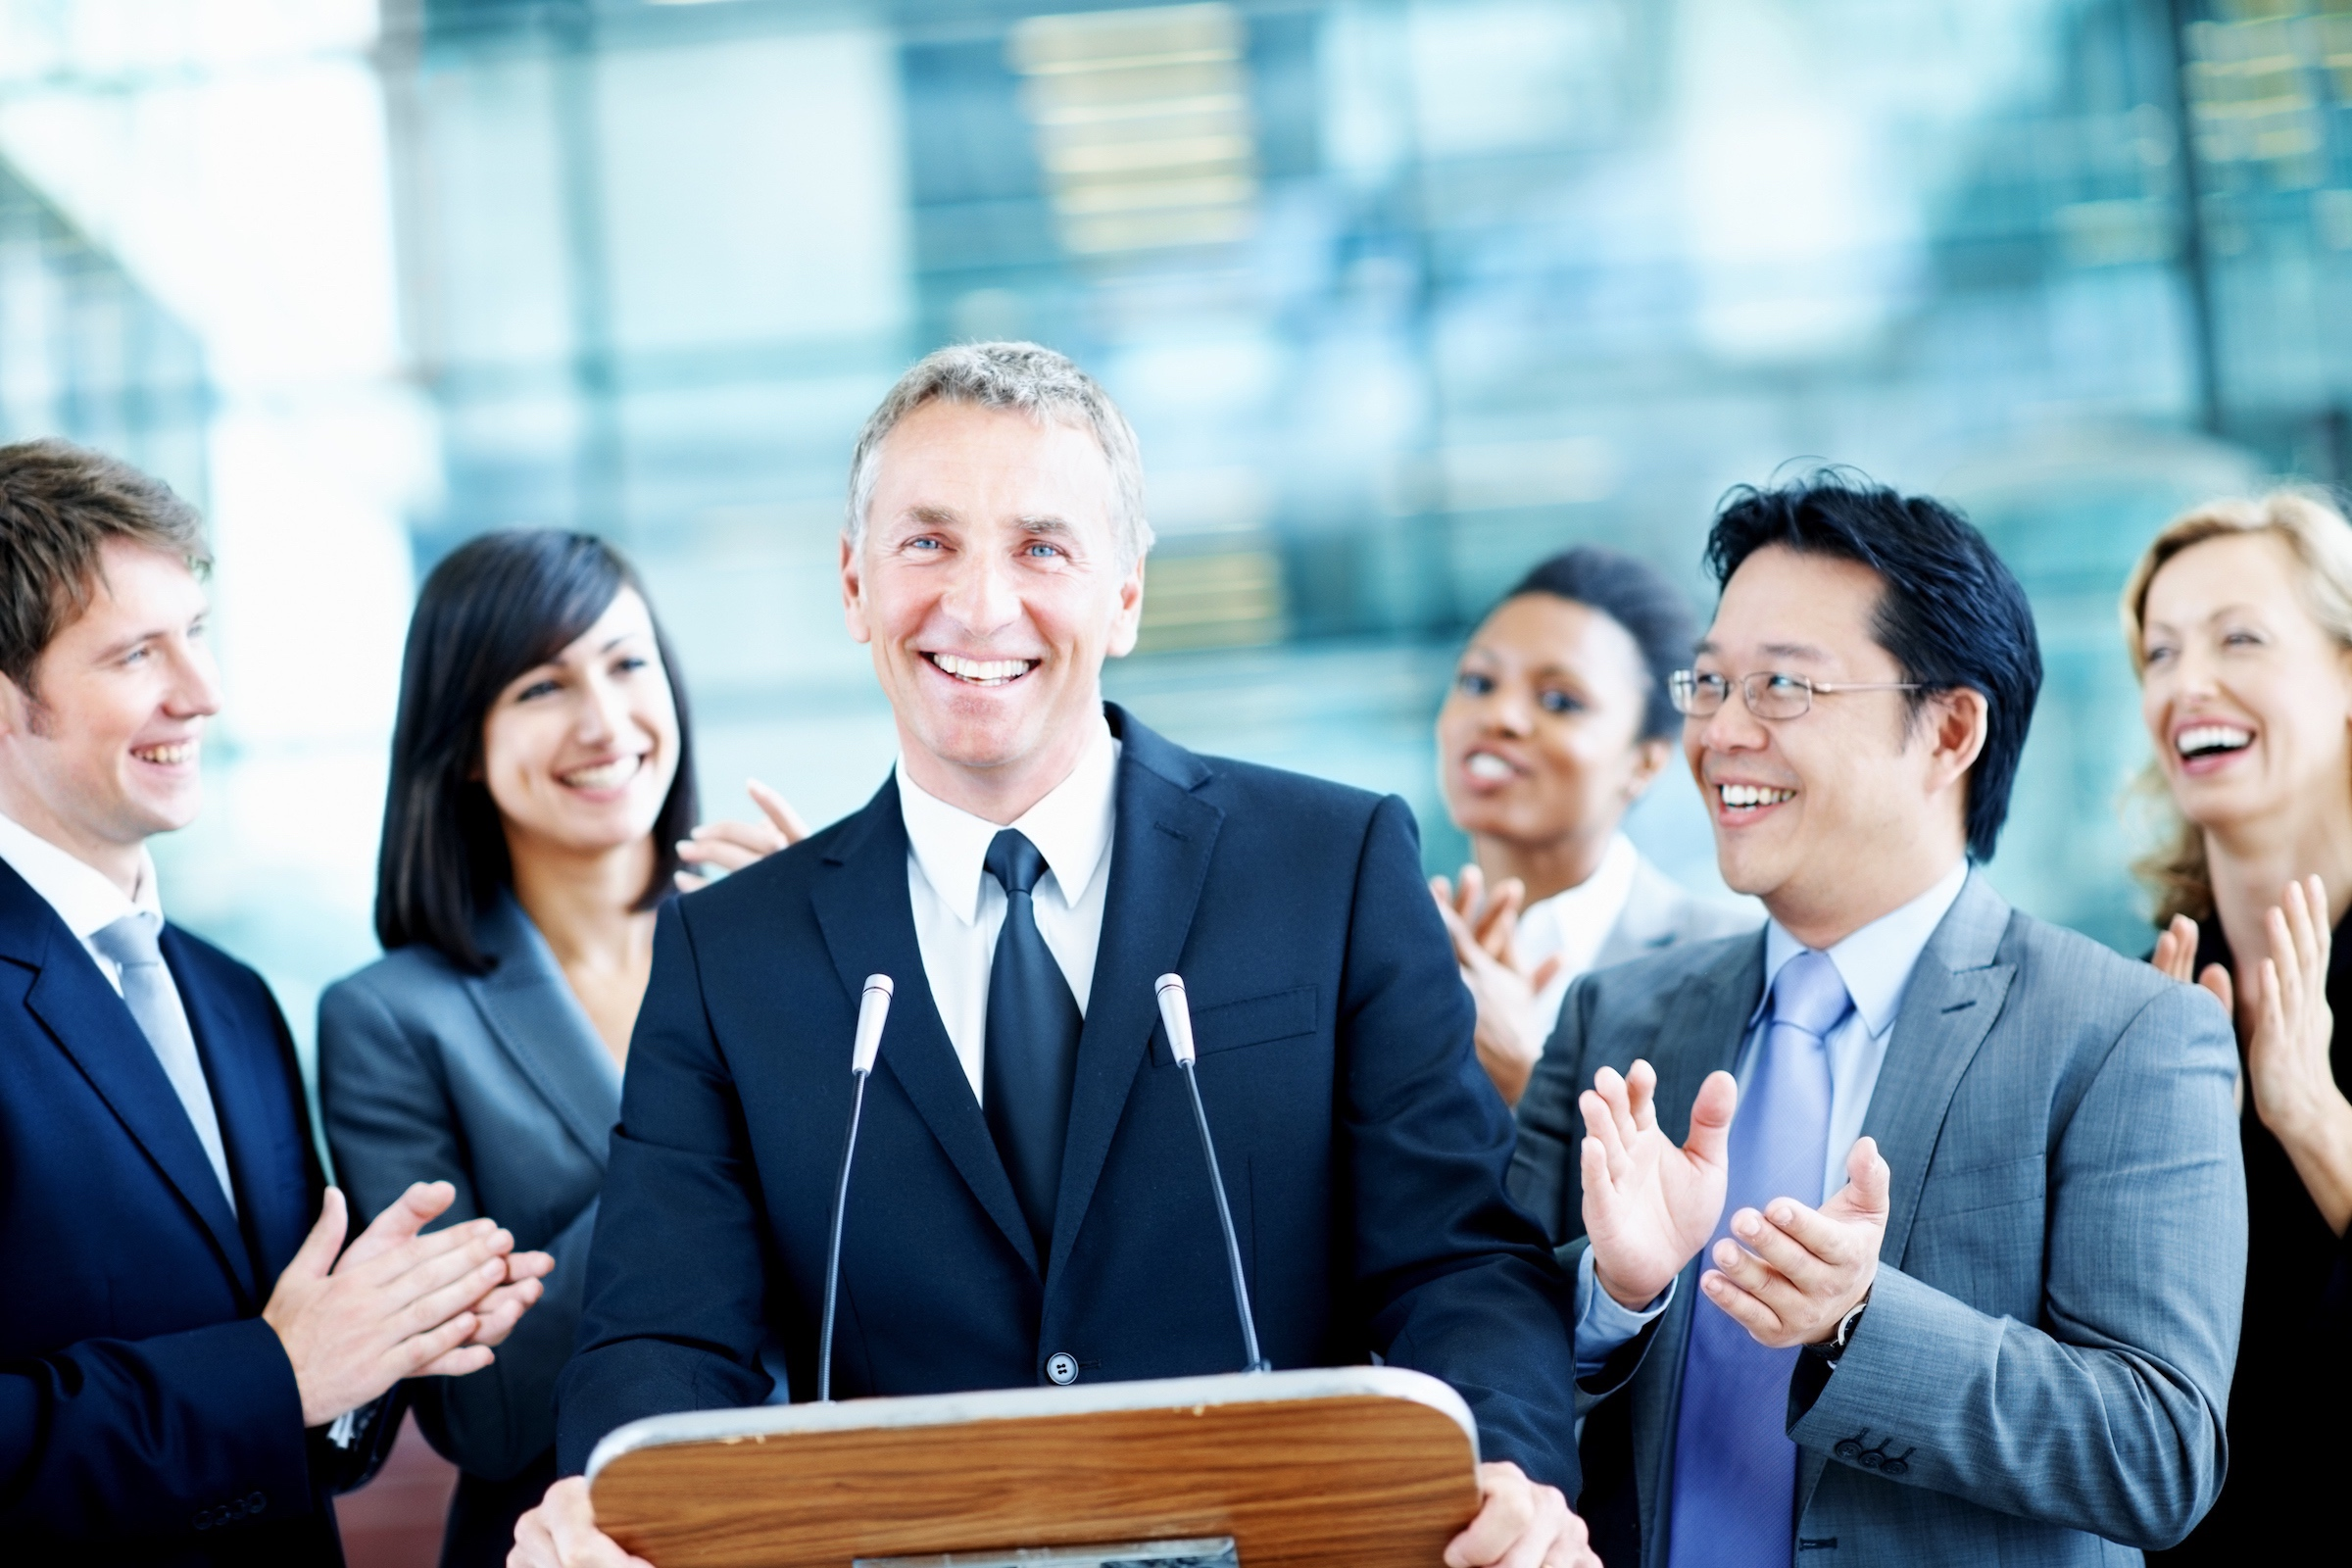 The company anniversary our speechwriters turn your